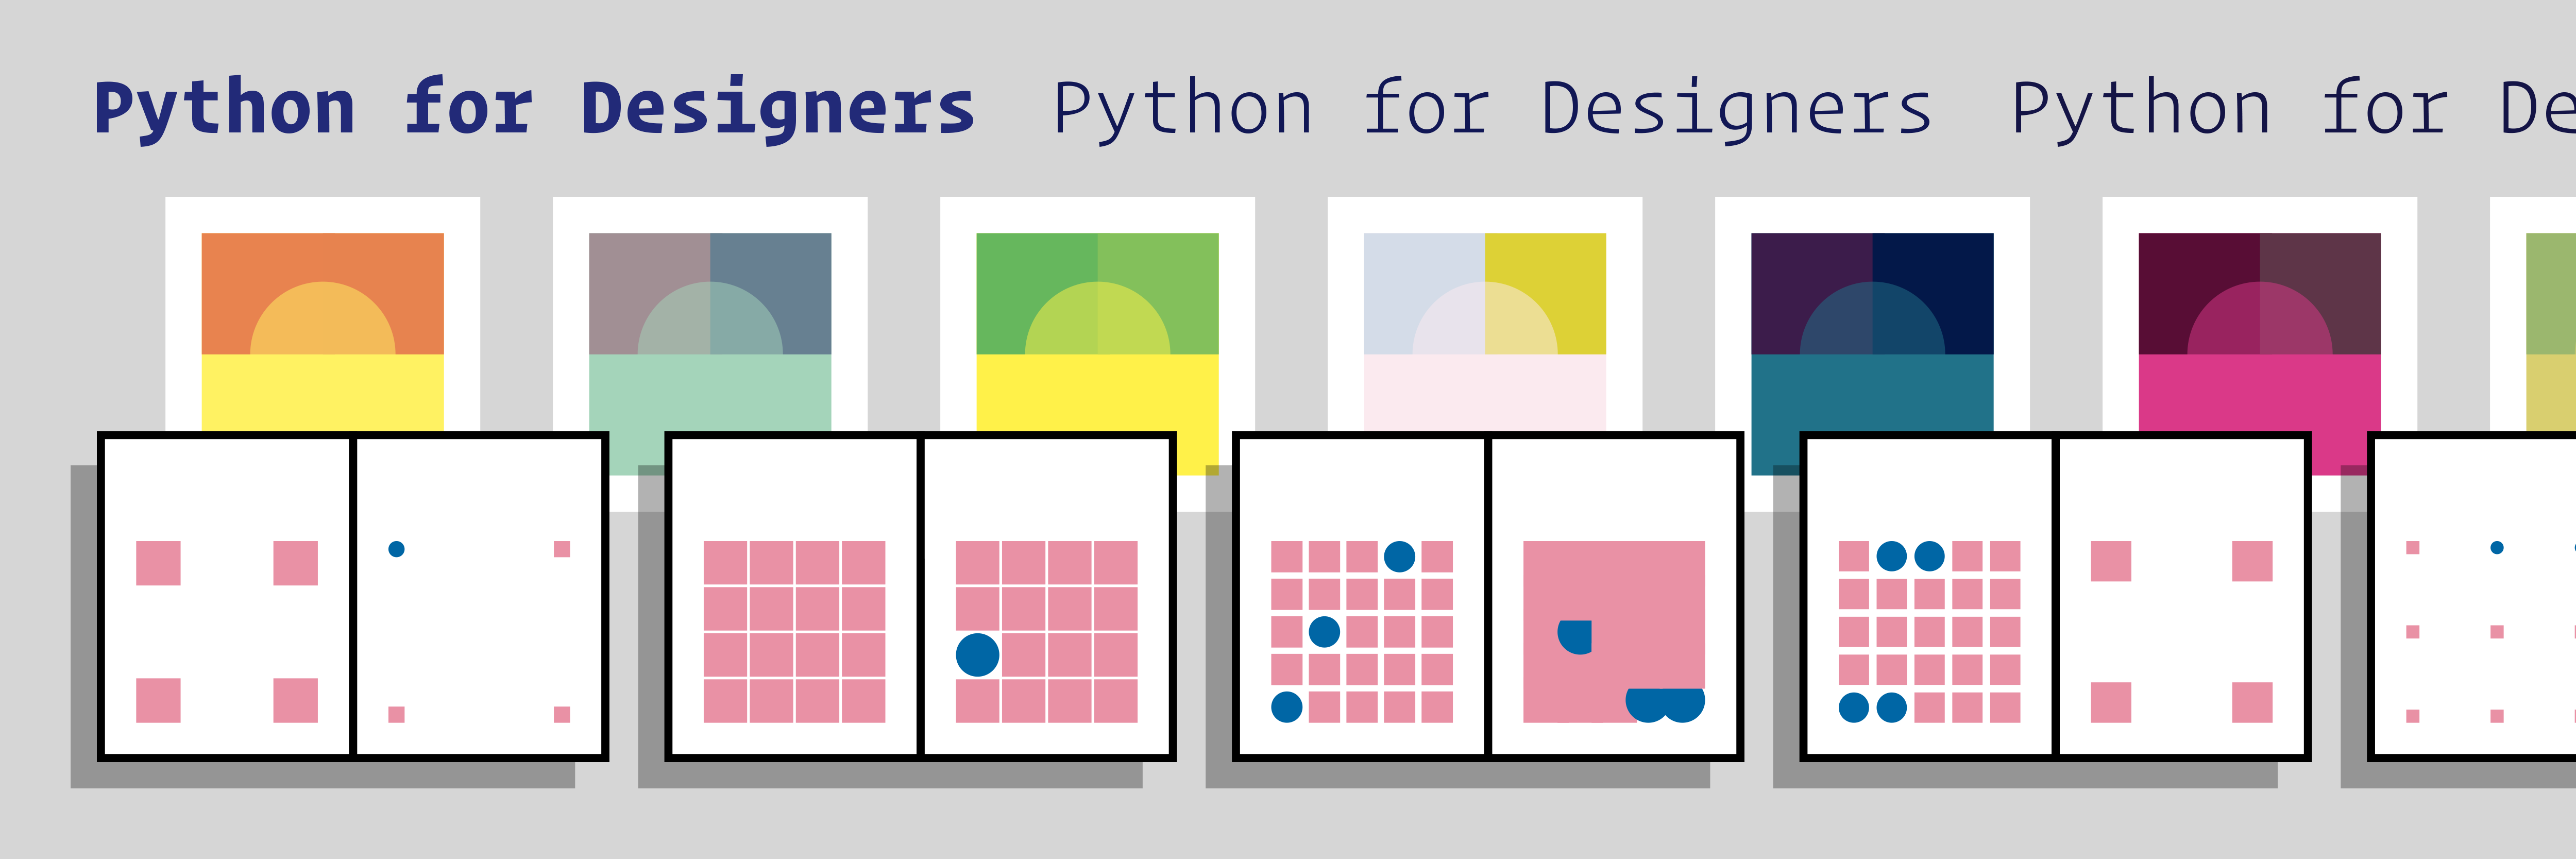 Type@Cooper - Python for Designers